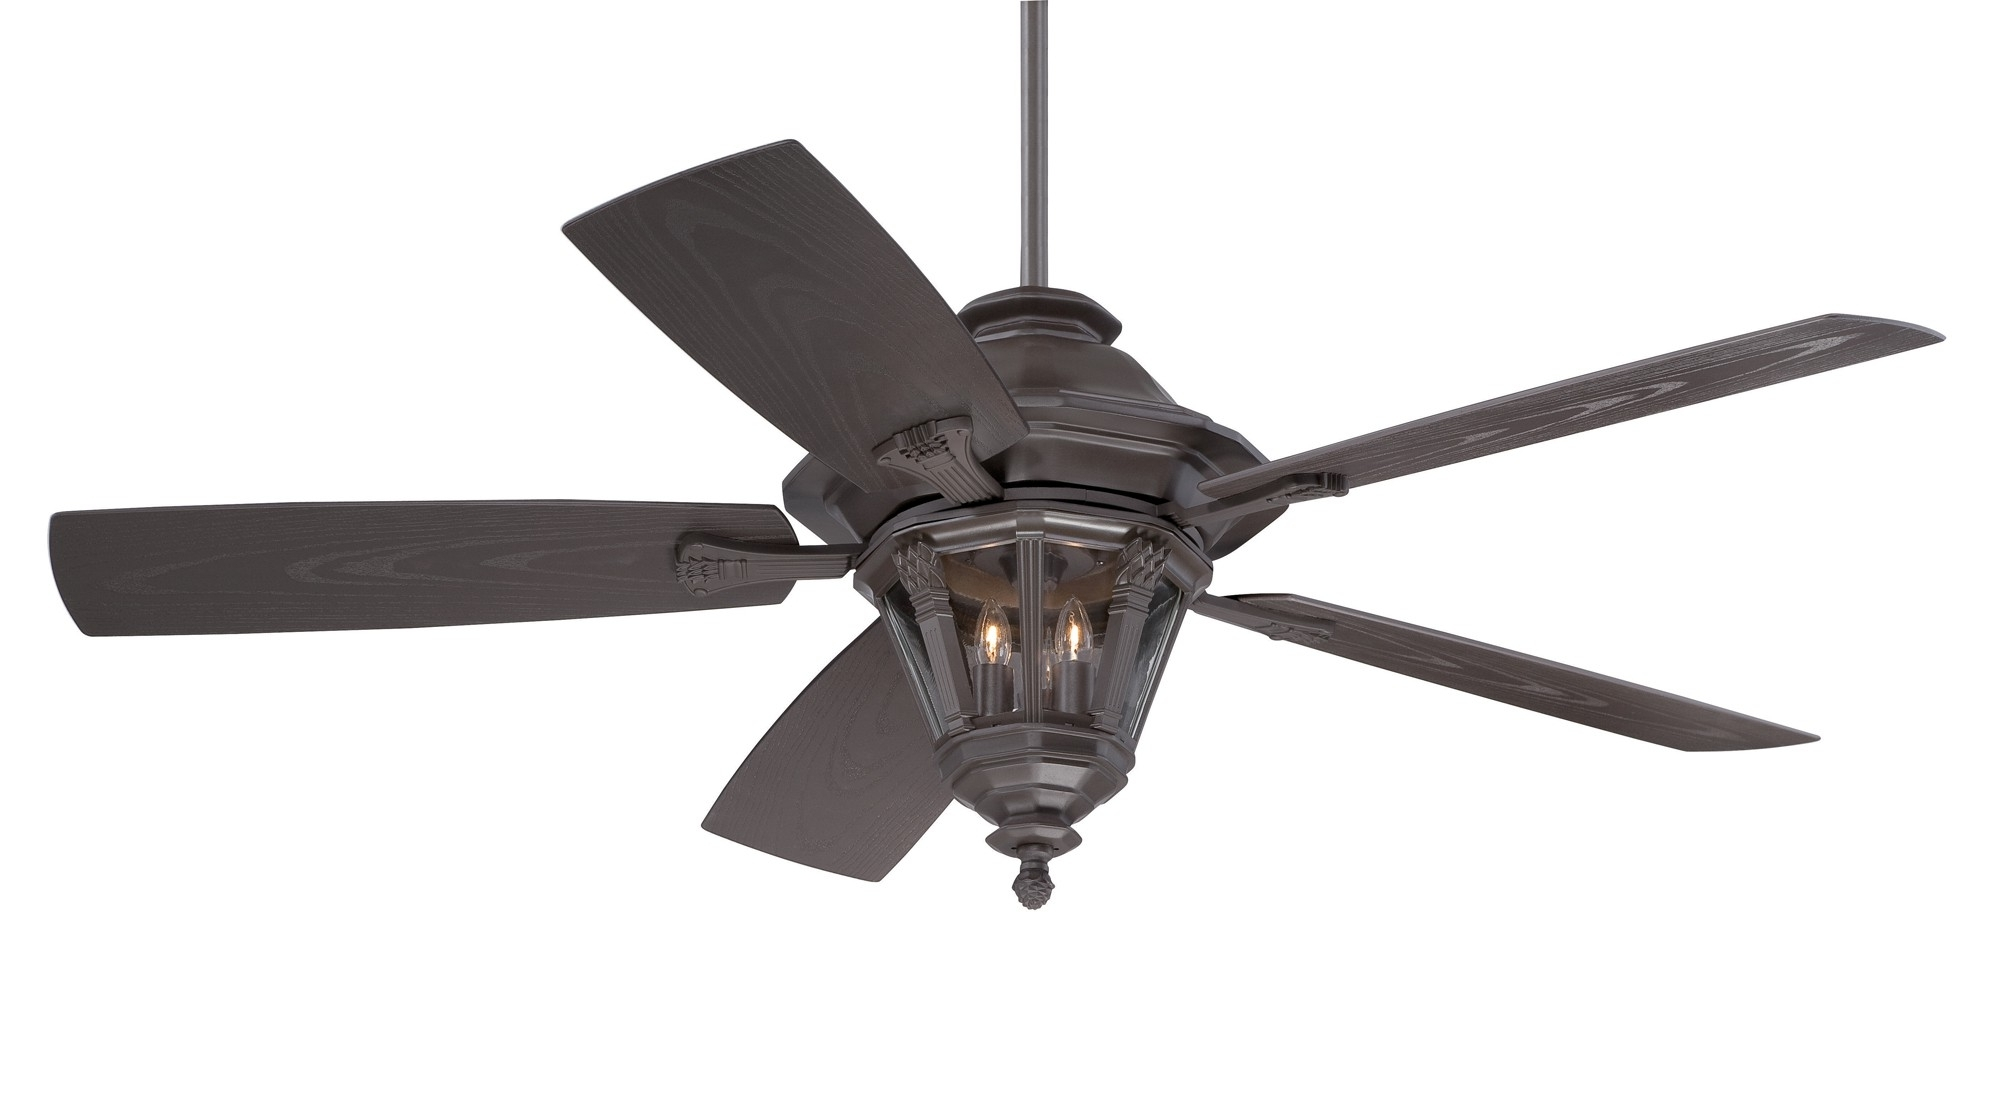 Ceiling Fans : Ceiling Fan With Remote Industrial Fans Wet Location Intended For Fashionable Outdoor Ceiling Fans With Damp Rated Lights (View 3 of 20)